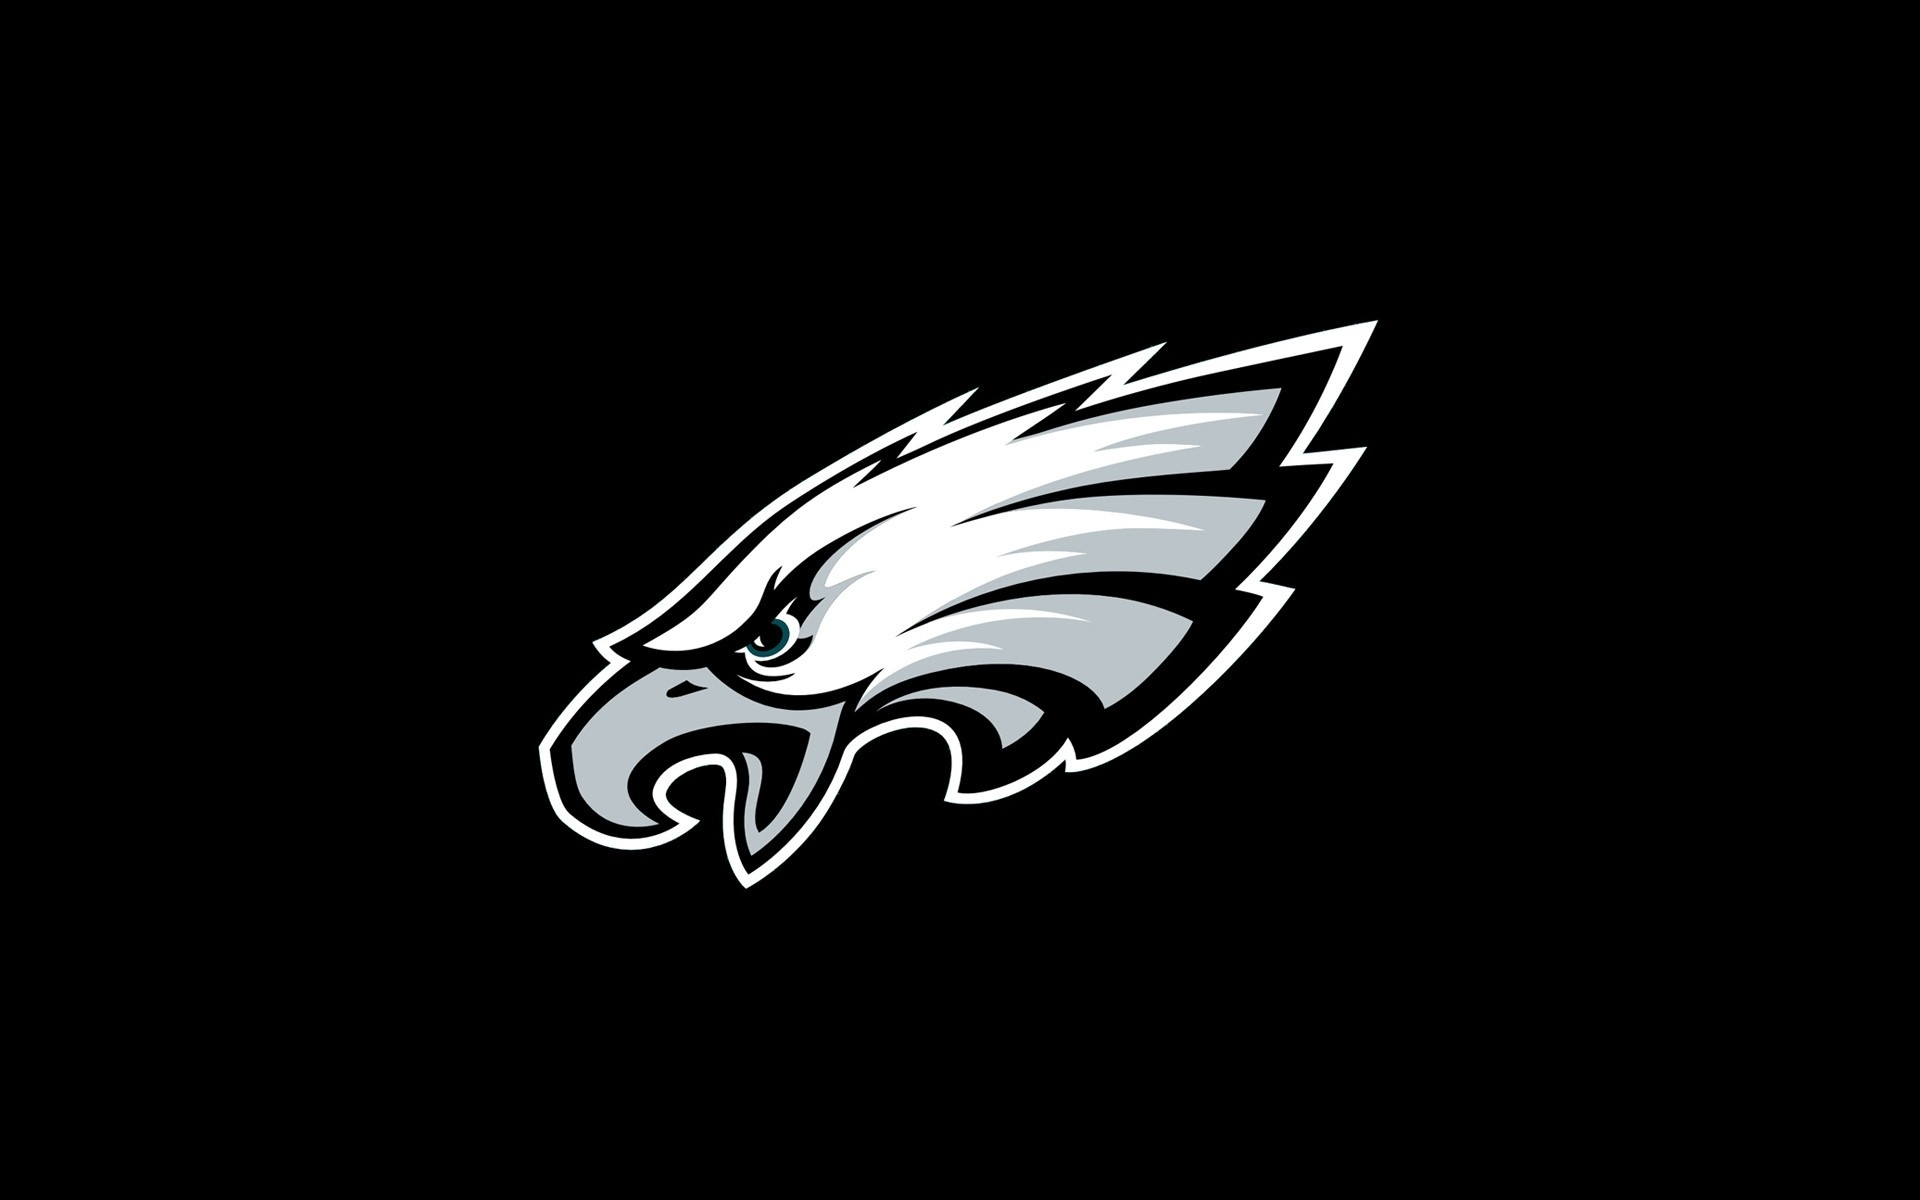 philadelphia eagles logo desktop wallpaper 55959 1920x1200 px